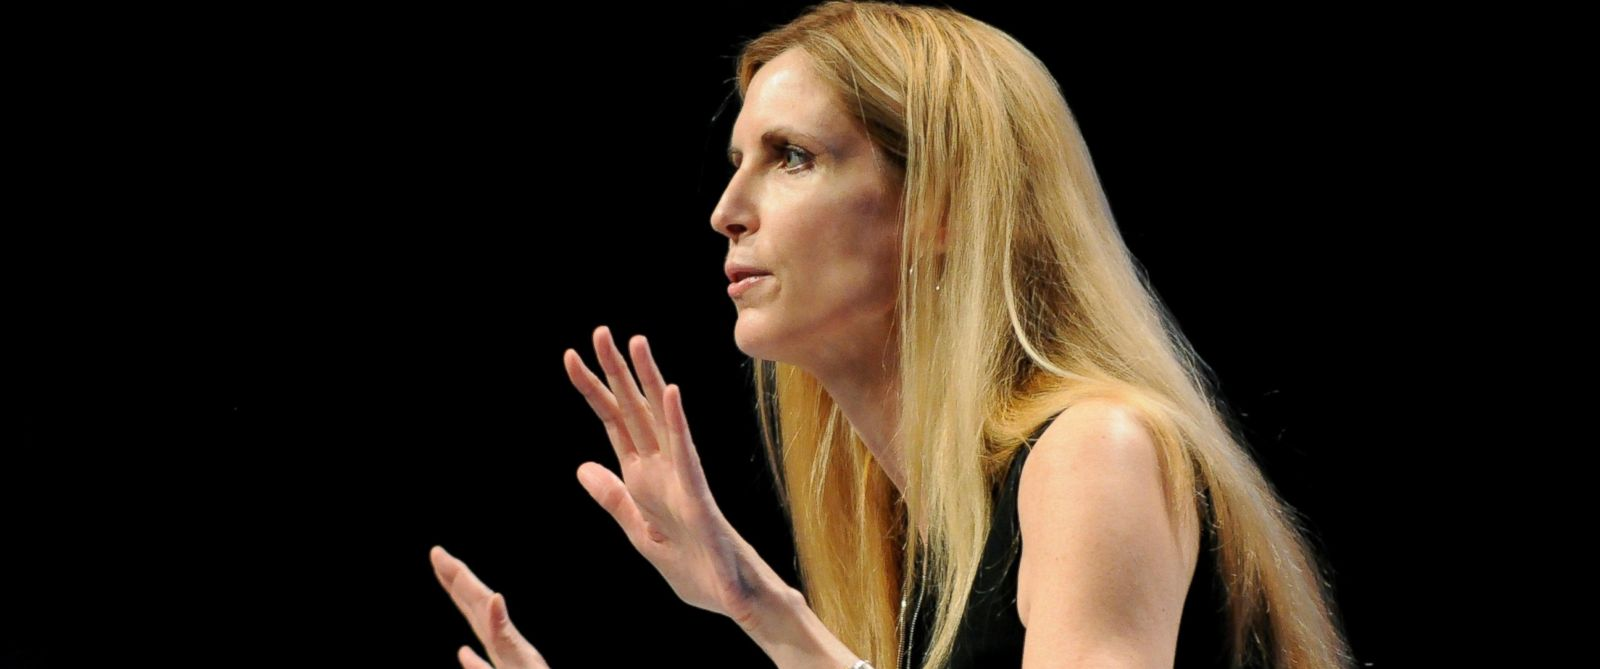 ann coulter - photo #5